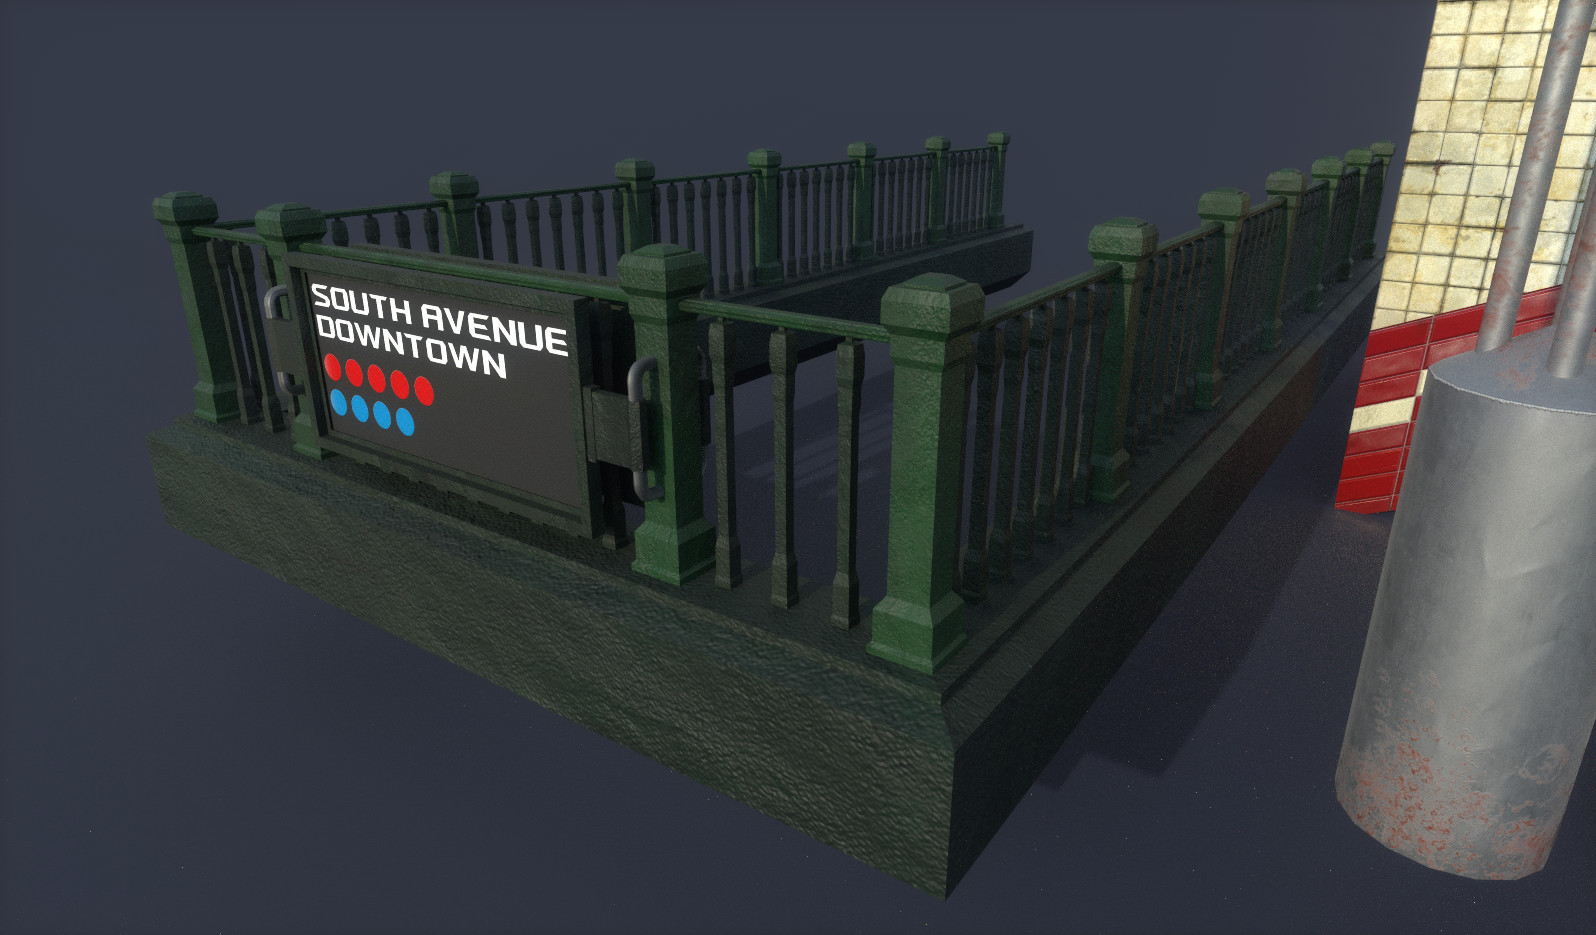 Subway Entrance Guard Rail